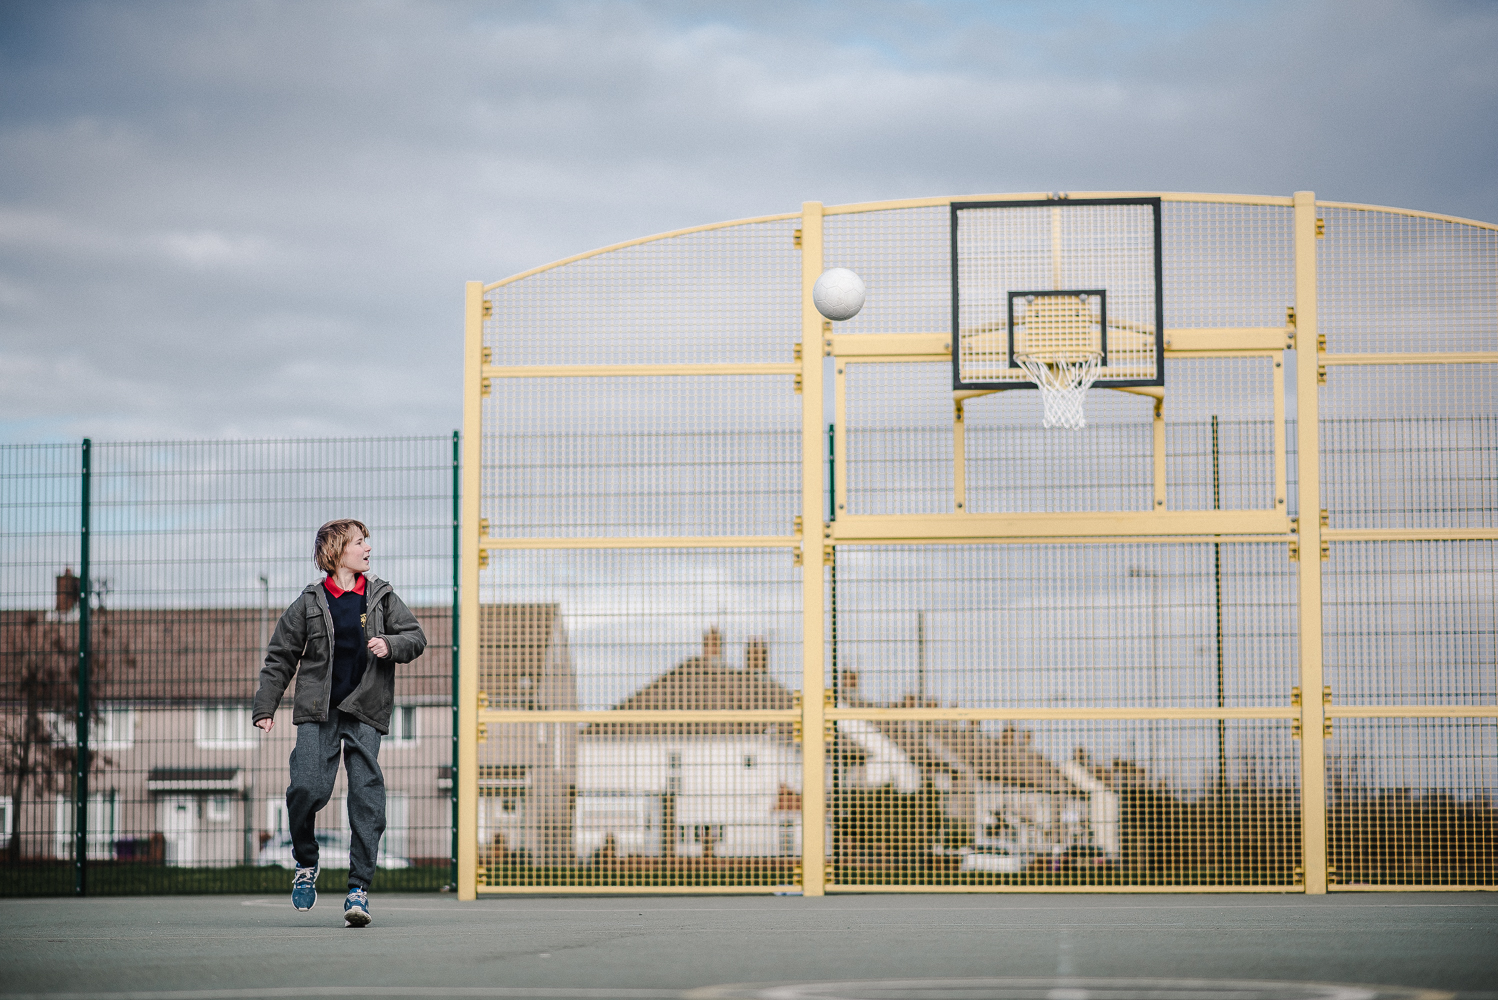 Young person on a basketball court